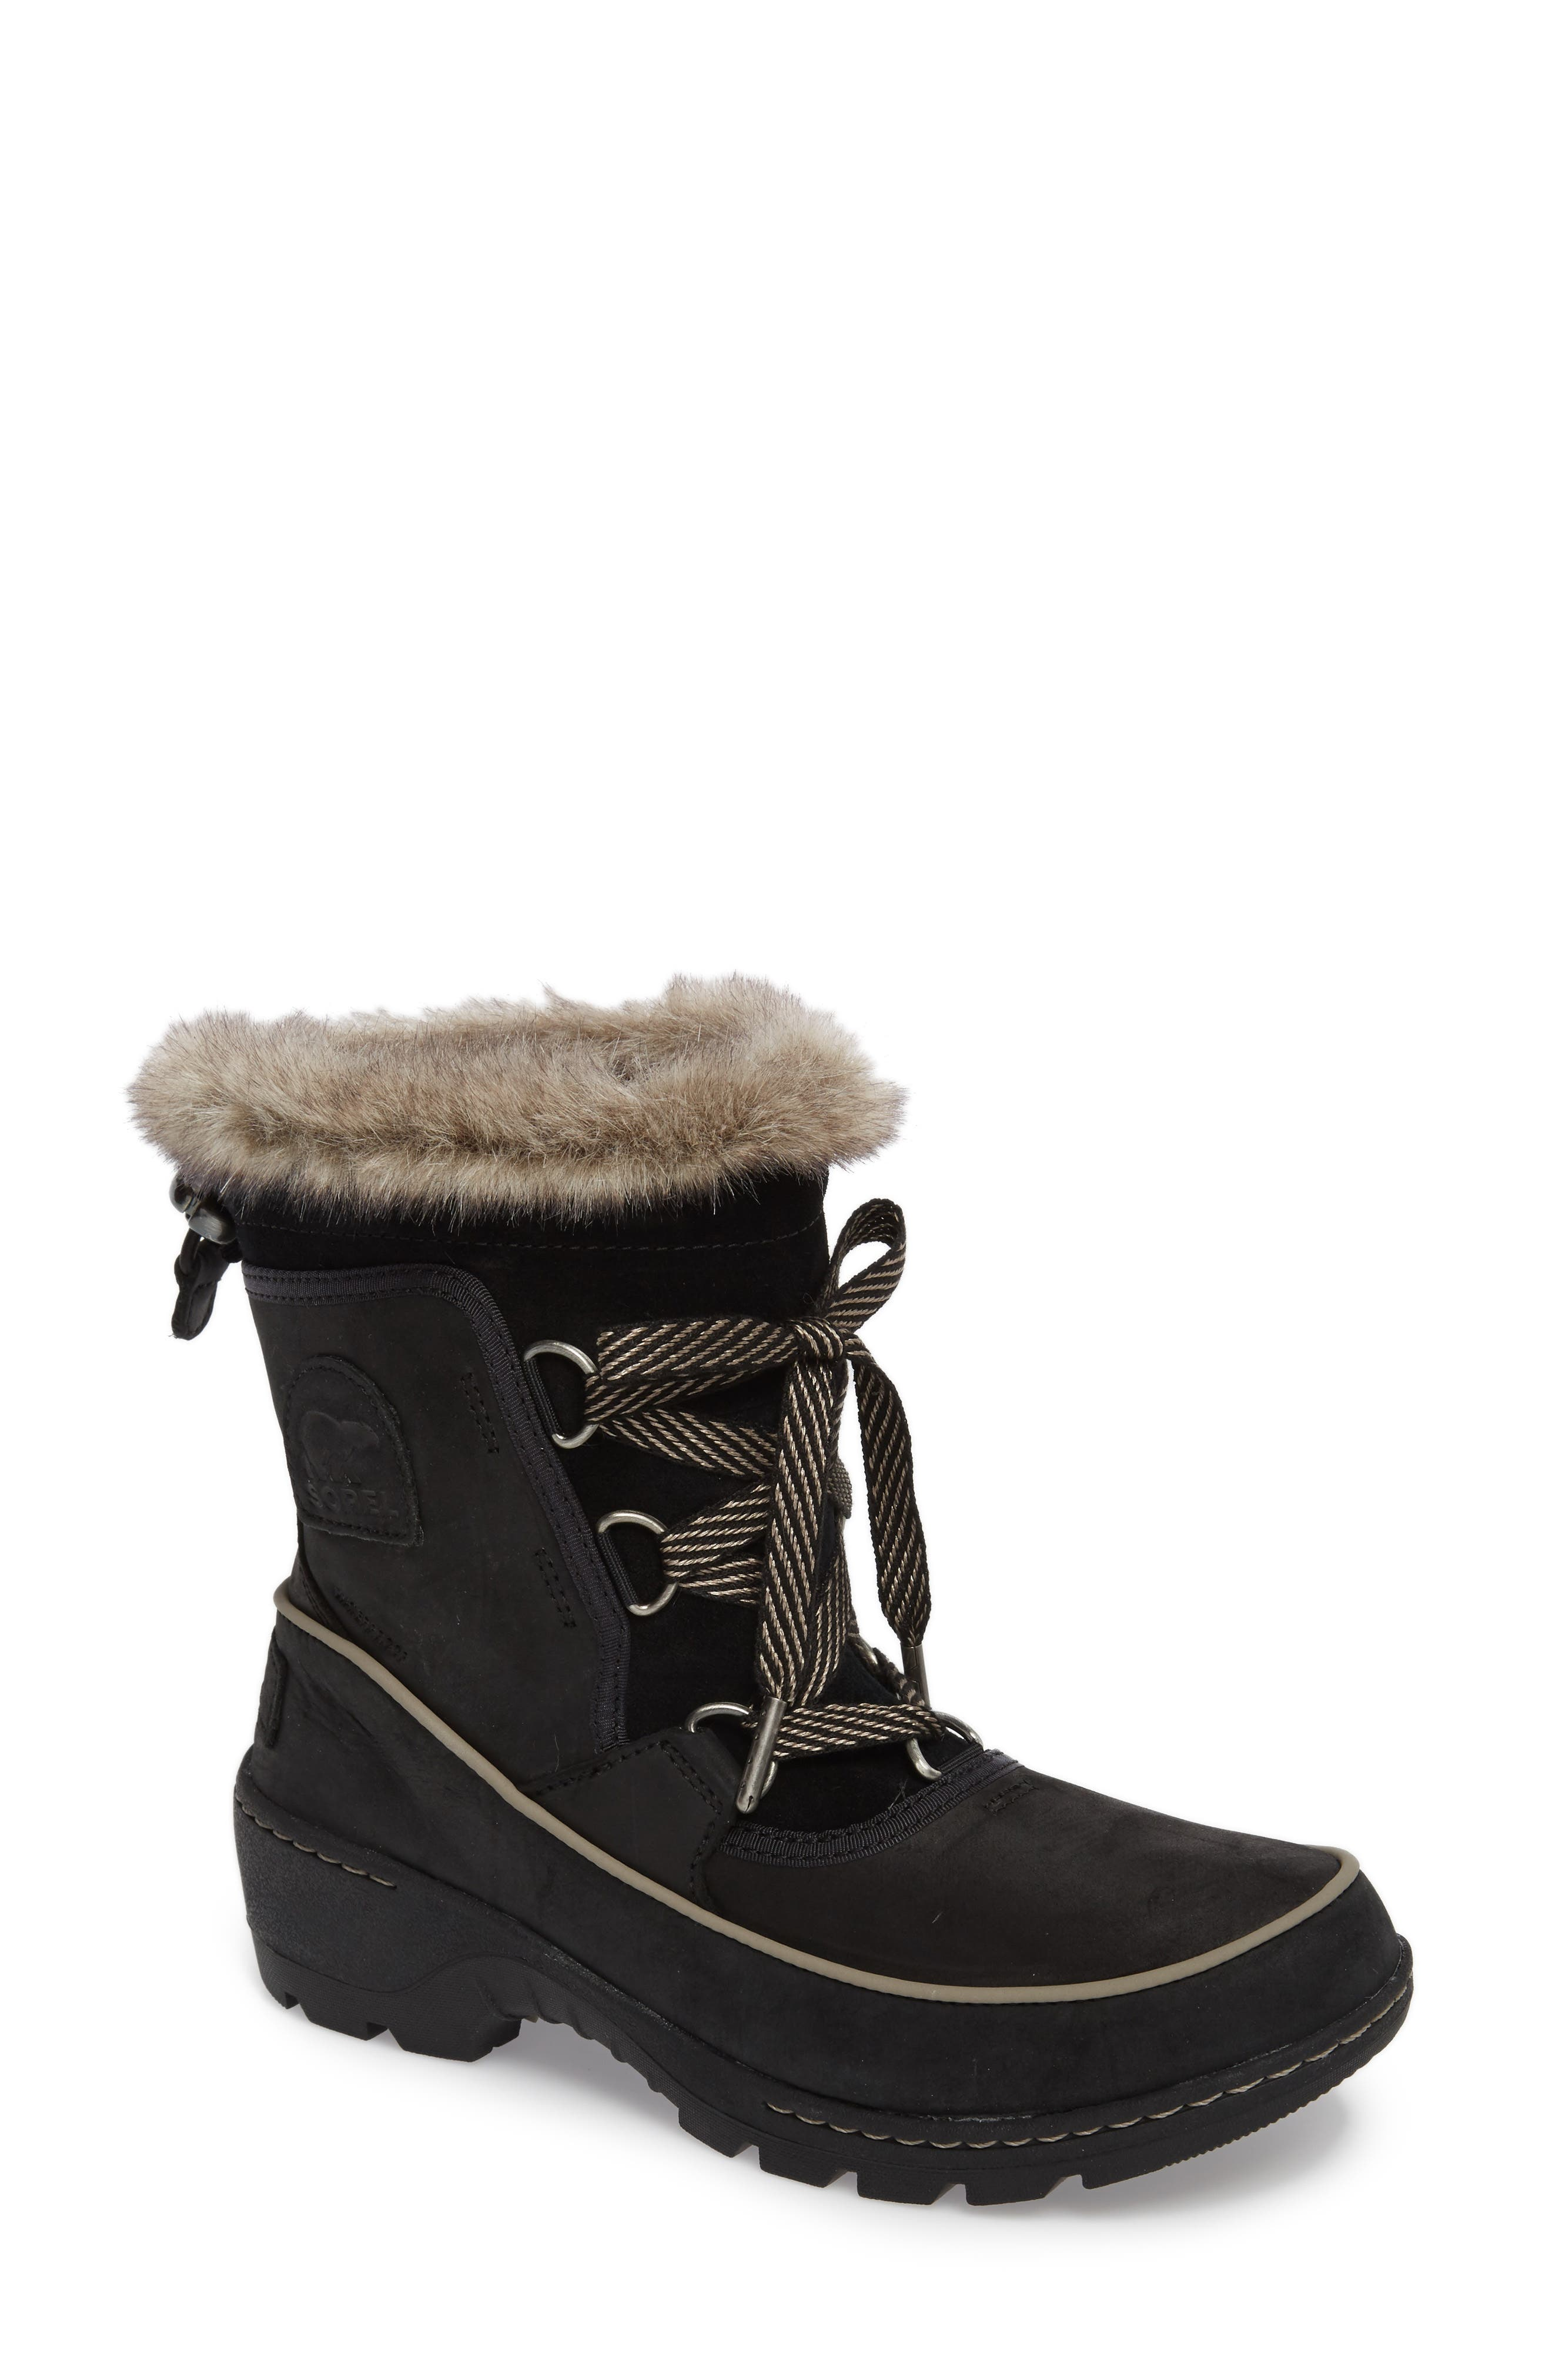 Tivoli II Insulated Winter Boot with Faux Fur Trim,                             Main thumbnail 1, color,                             Black/ Kettle